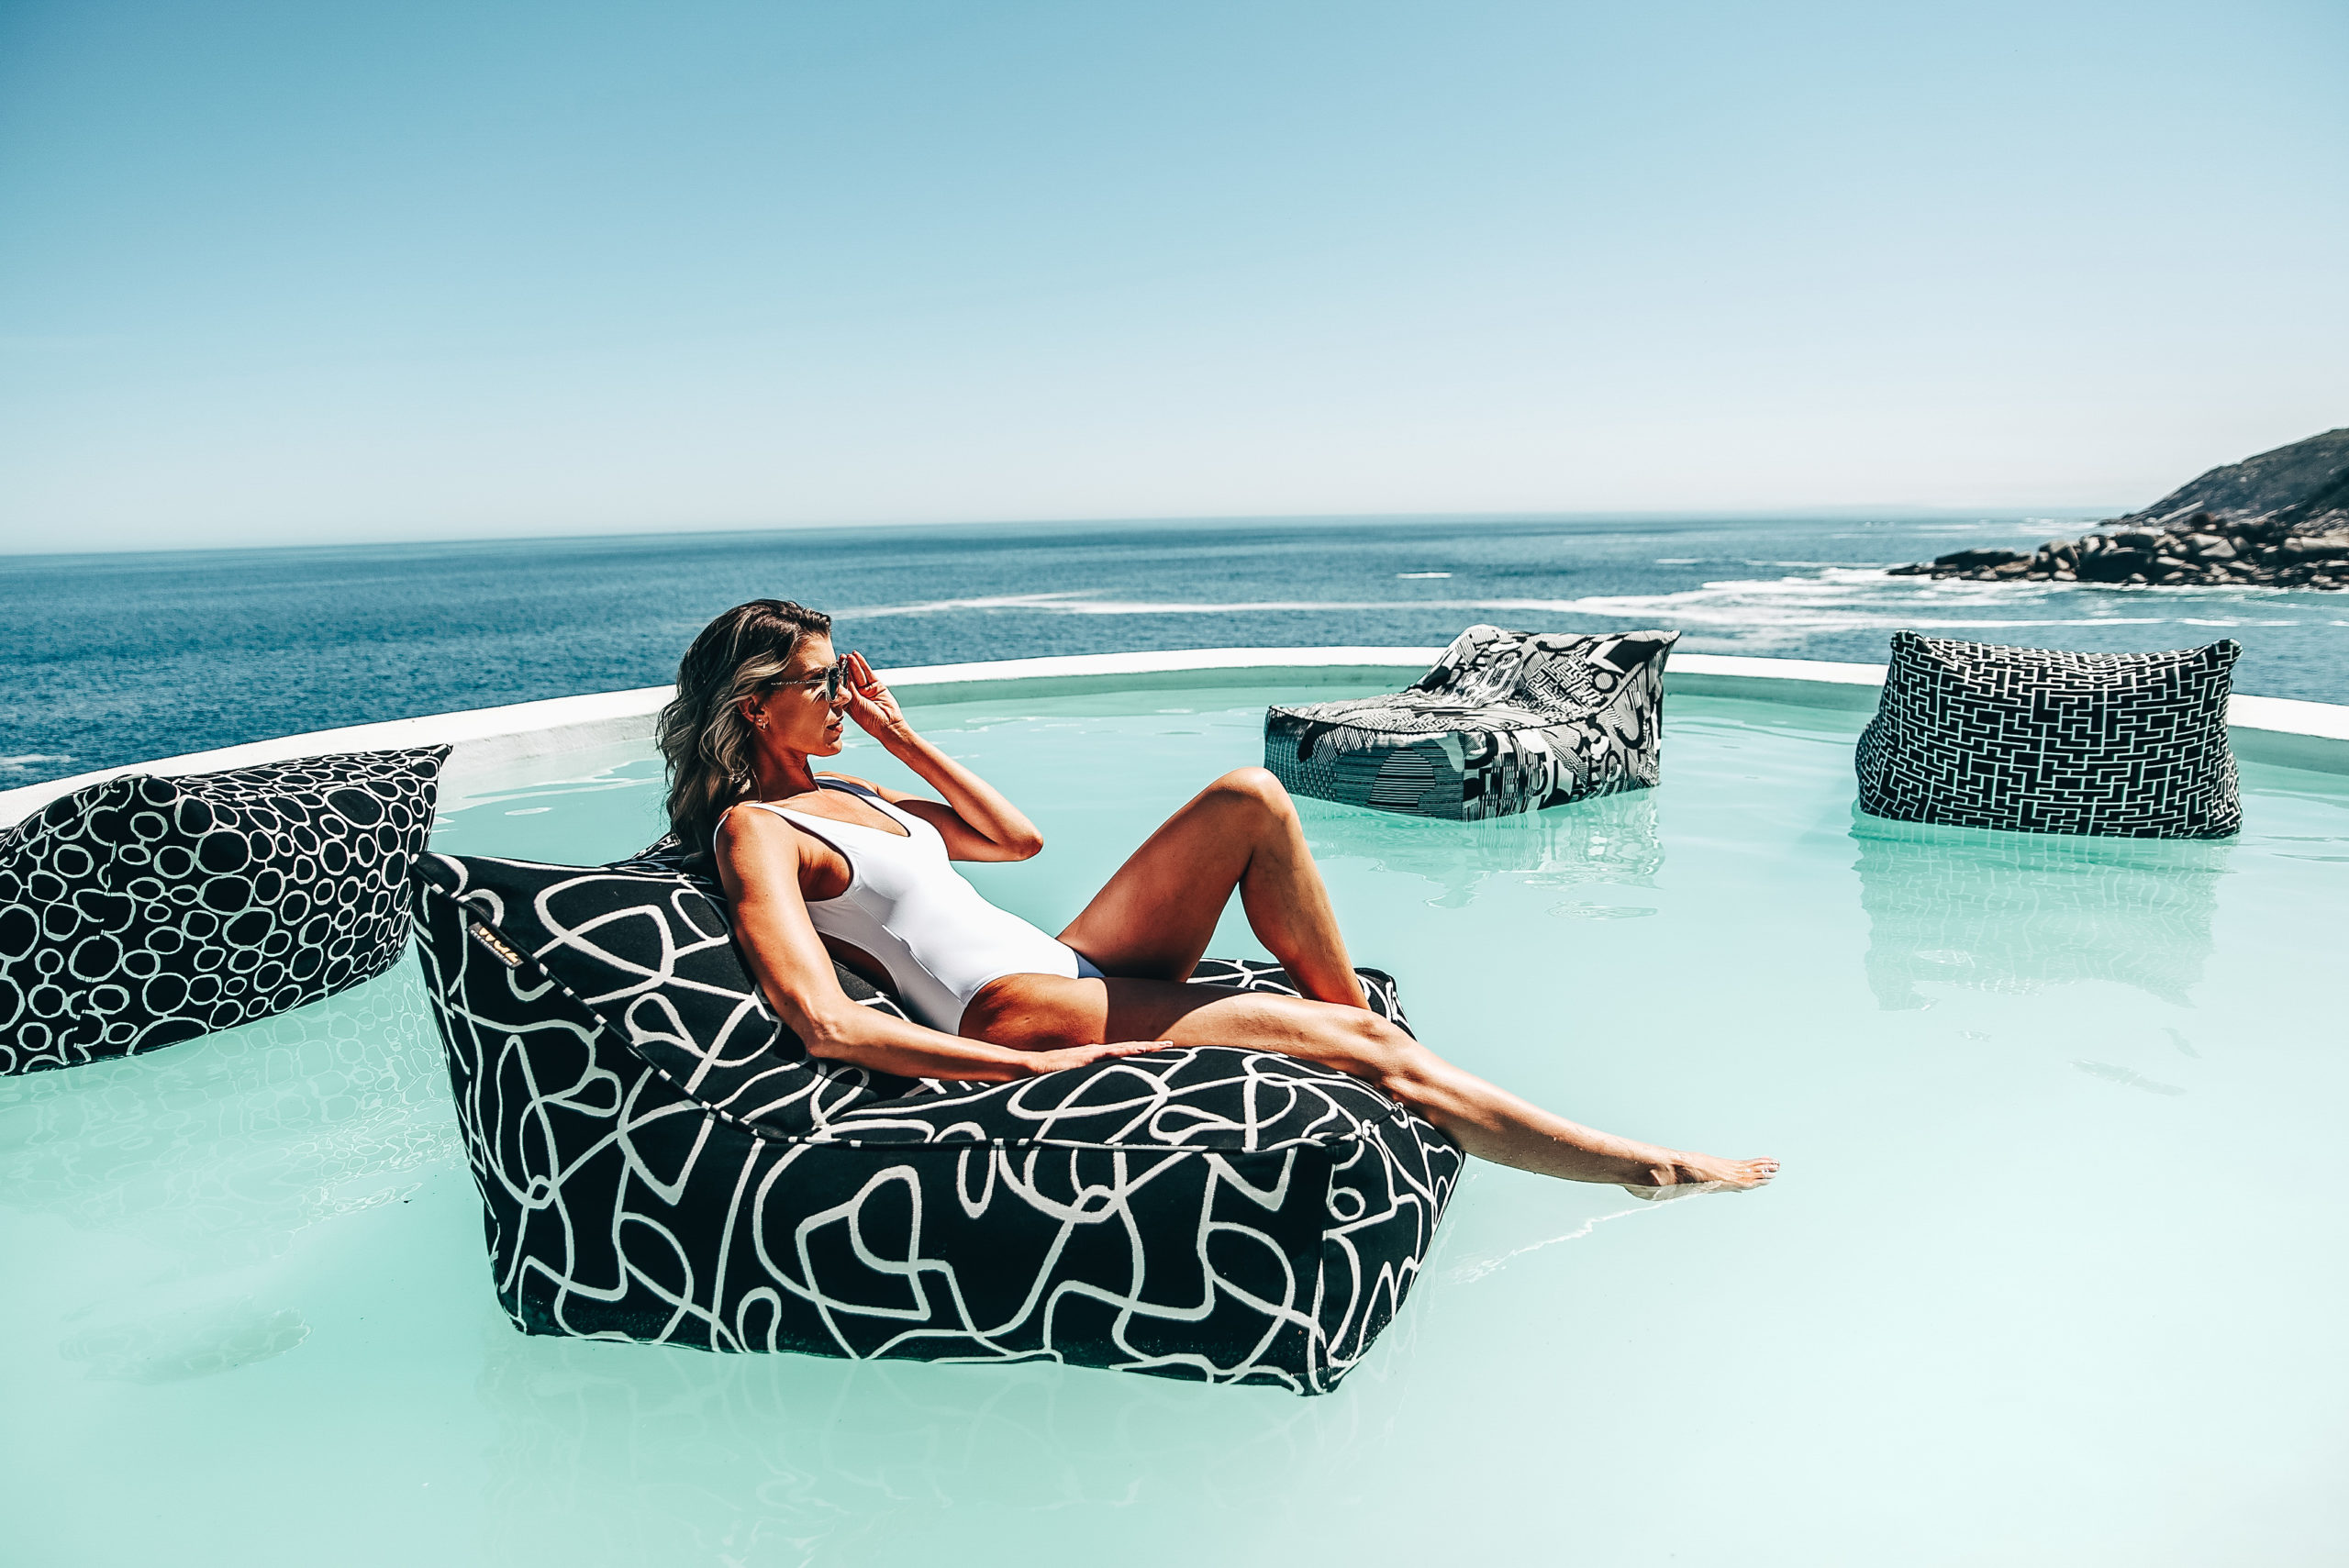 Waz luxury outdoor furniture model brigitte willers